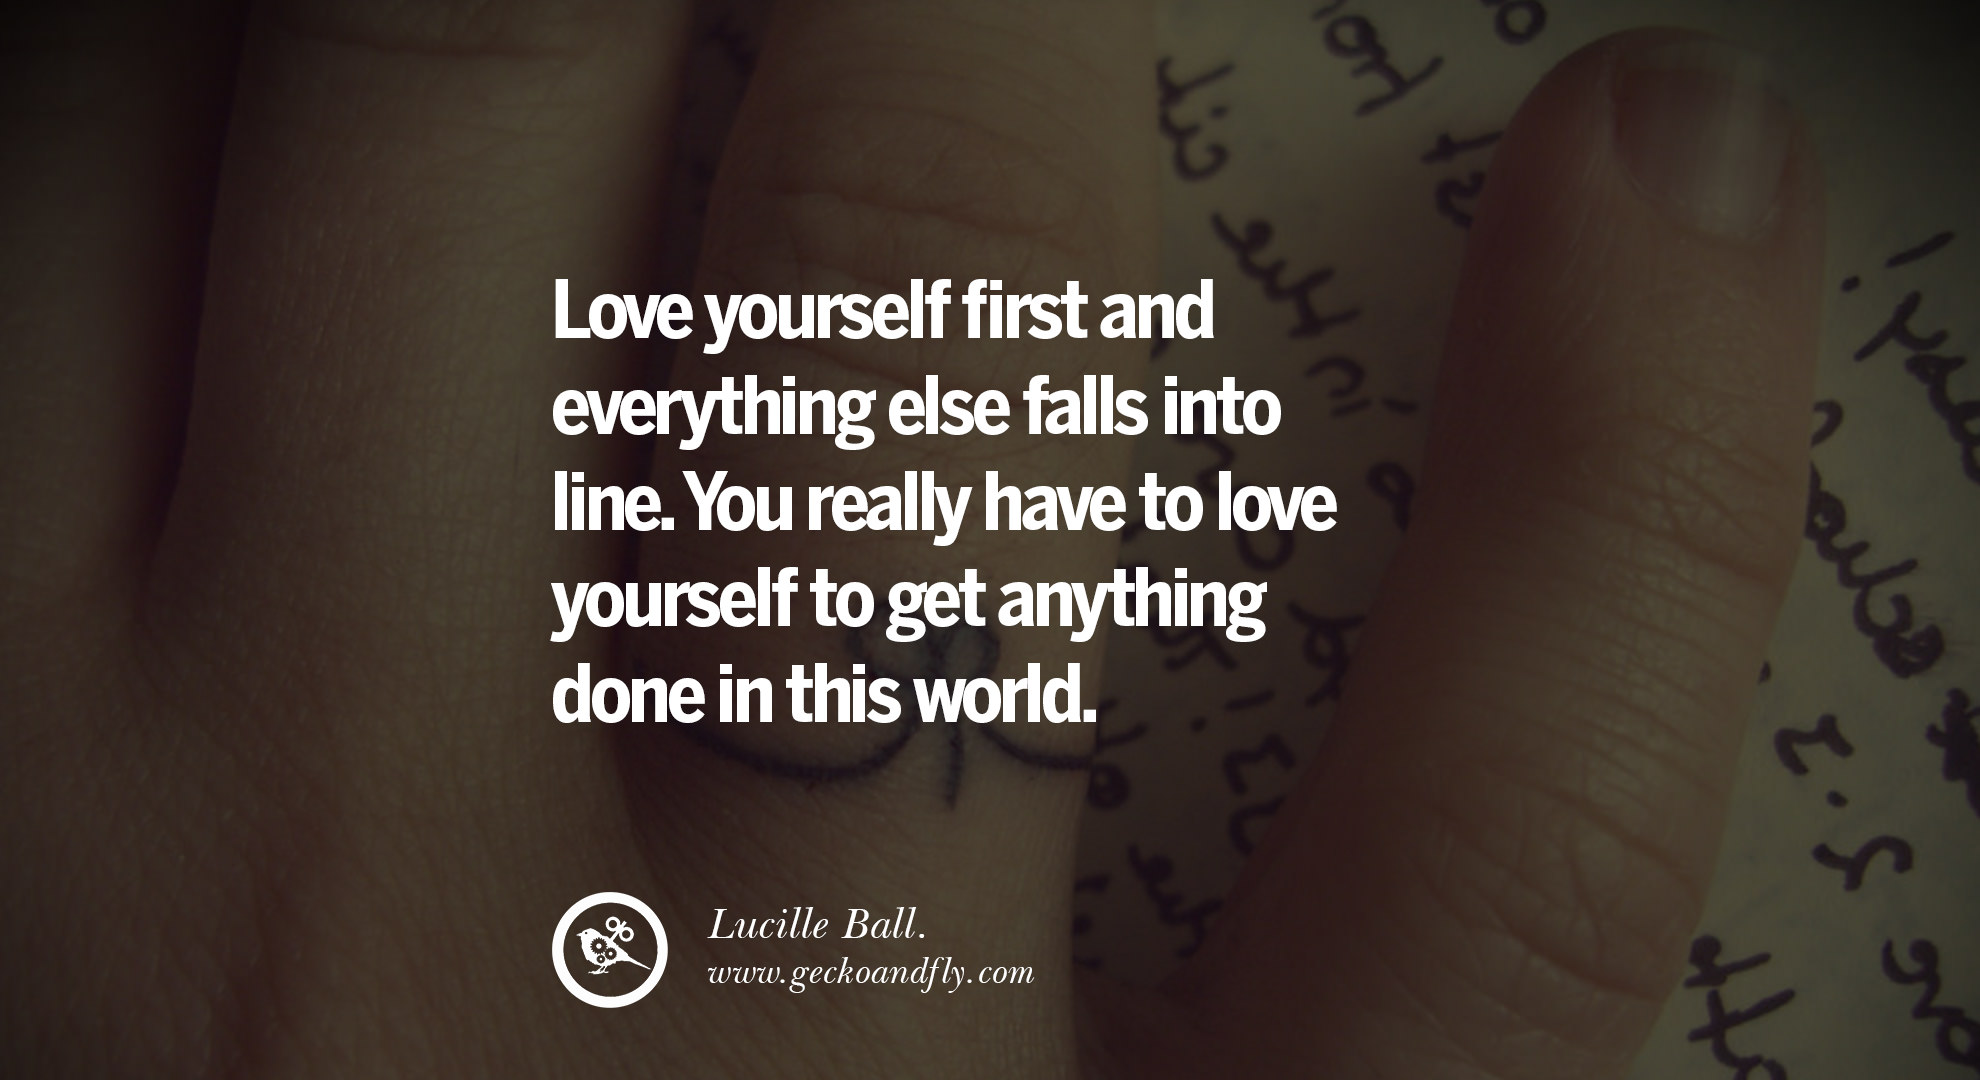 40 Quotes About Love : quotes about love Love yourself first and everything else falls into ...